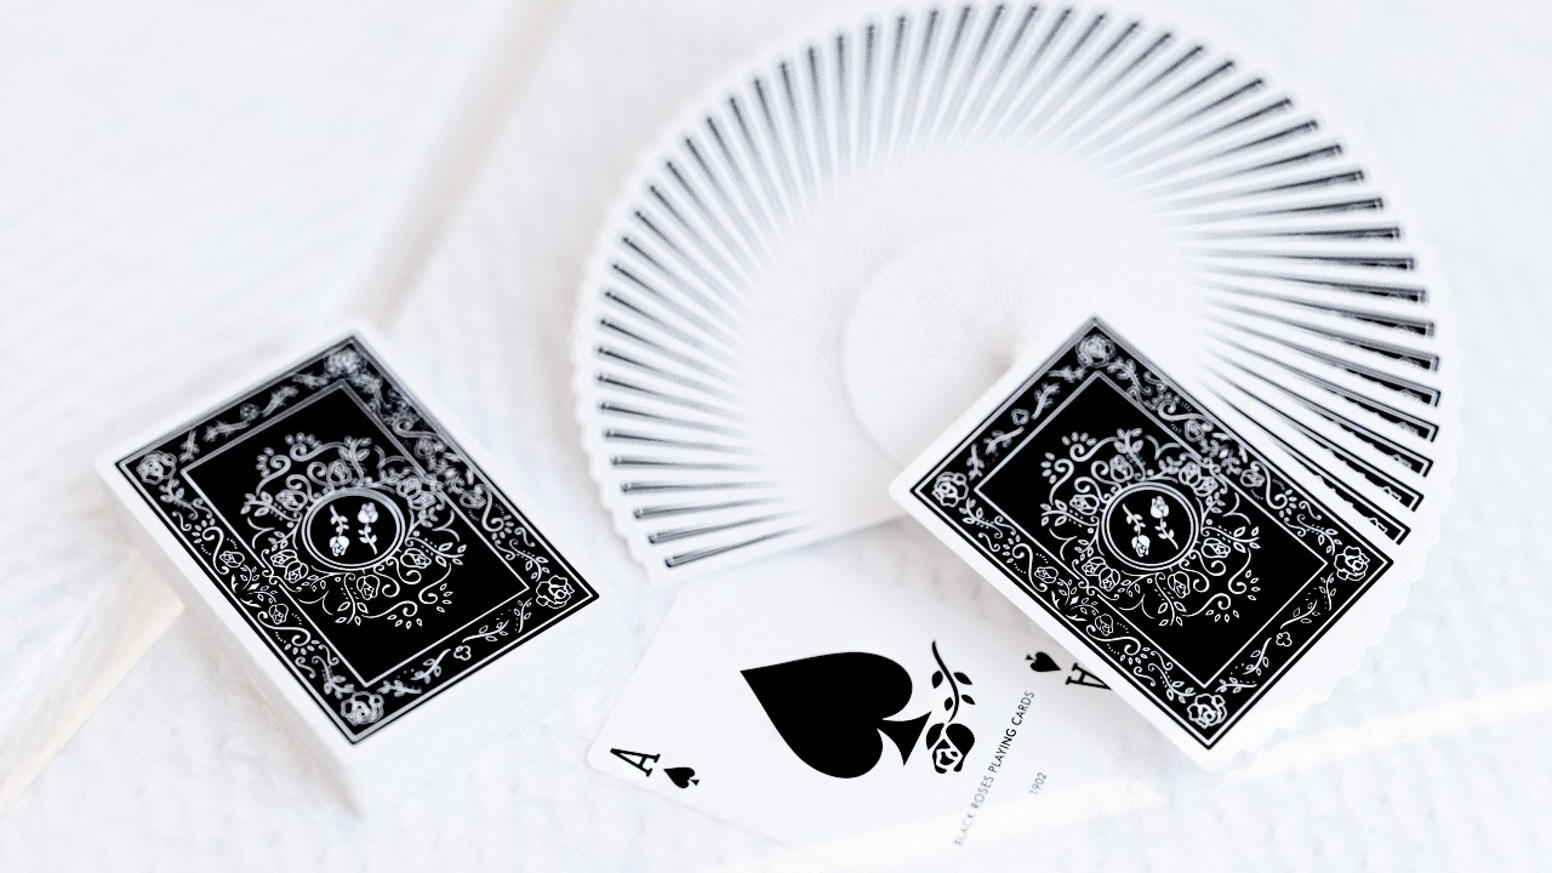 A breath of the past century meets modern minimalism. Both art styles harmonize perfectly with each other in this deck of cards.